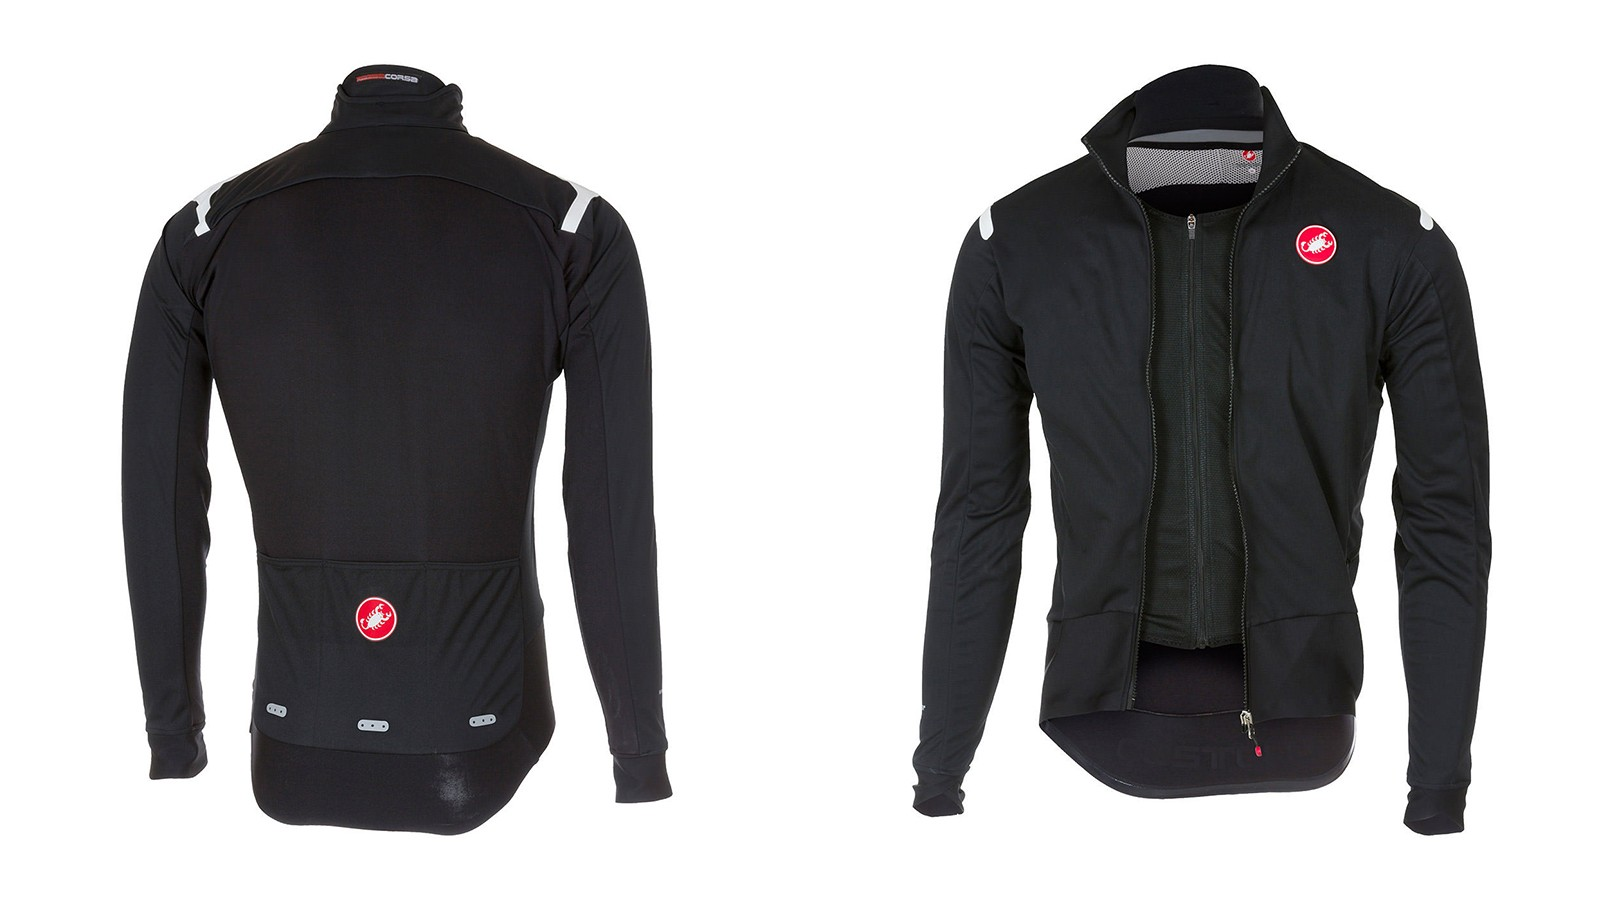 The RoS Jersey has Windstopper sleeves and front panels with a ProSecco Strada liner that has its own zipper